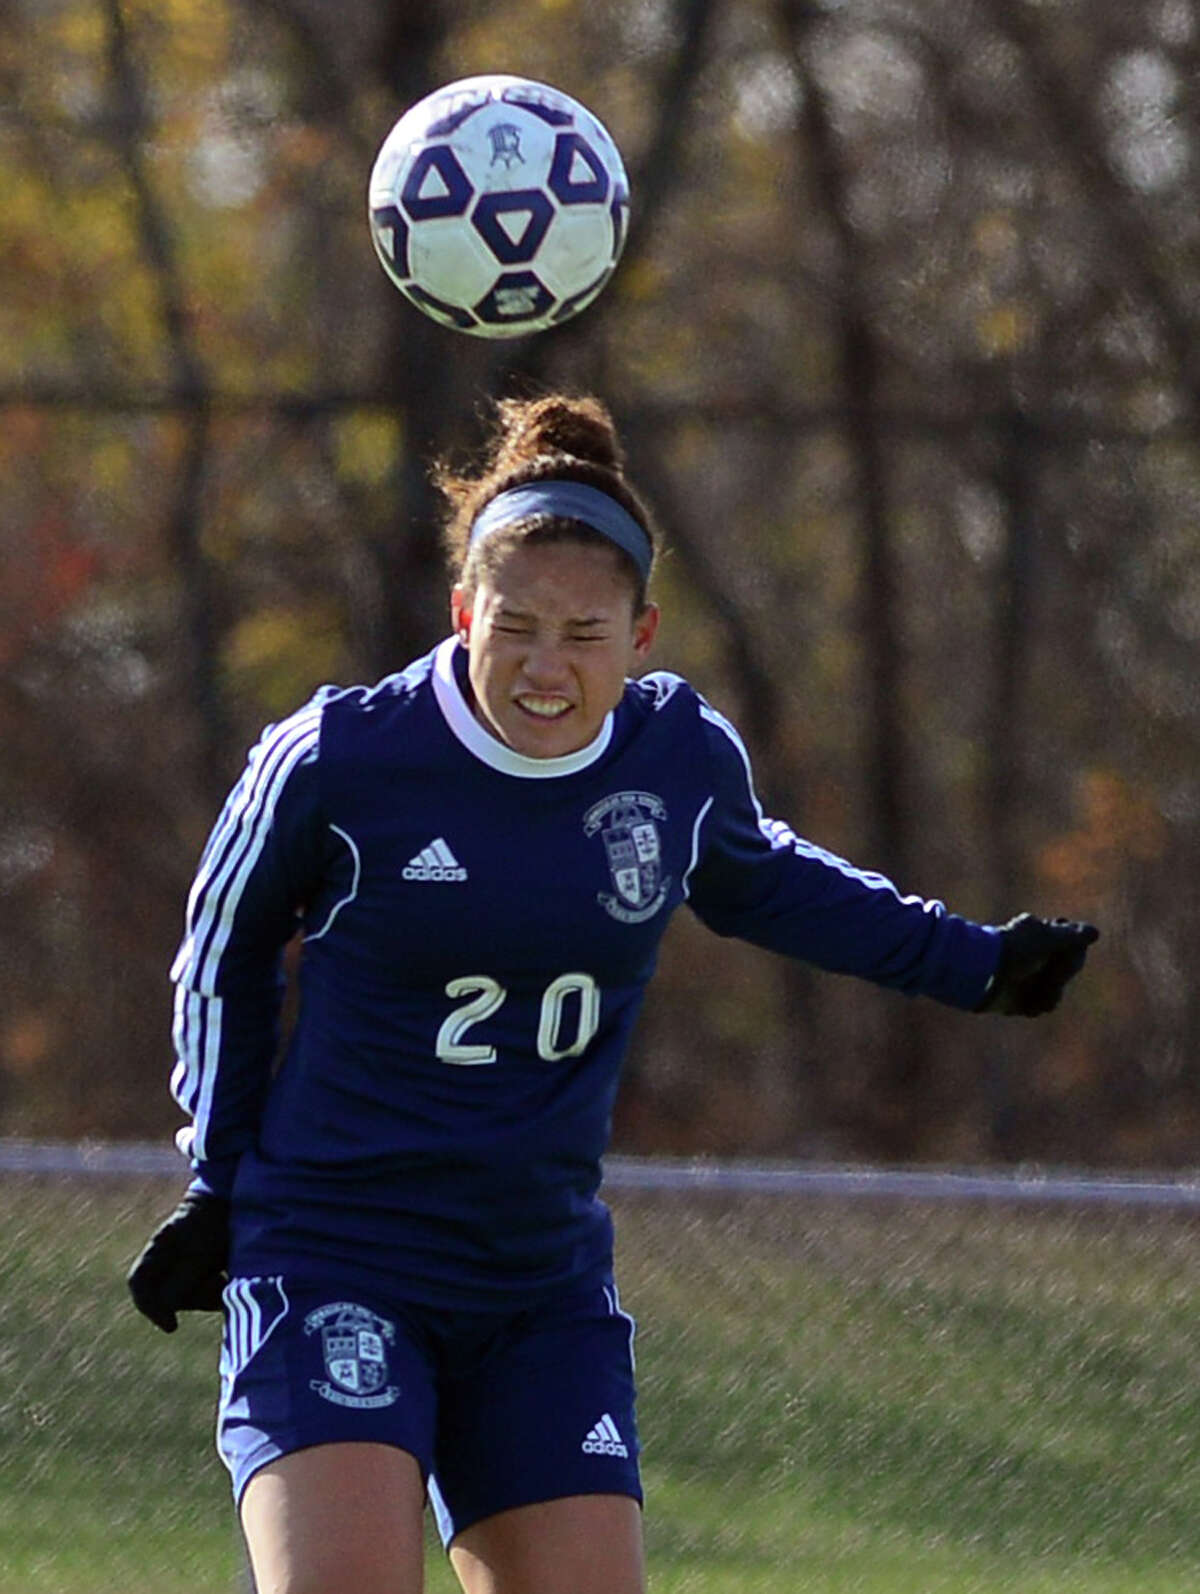 FILE PHOTO: Immaculate's Mackenzie Mitchell heads the ball, during Class L CIAC state girls soccer championship action against Avon in West Haven, Conn. on Saturday Nov. 15, 2014. Immaculate No. 20 MacKenzie Mitchell Jr.